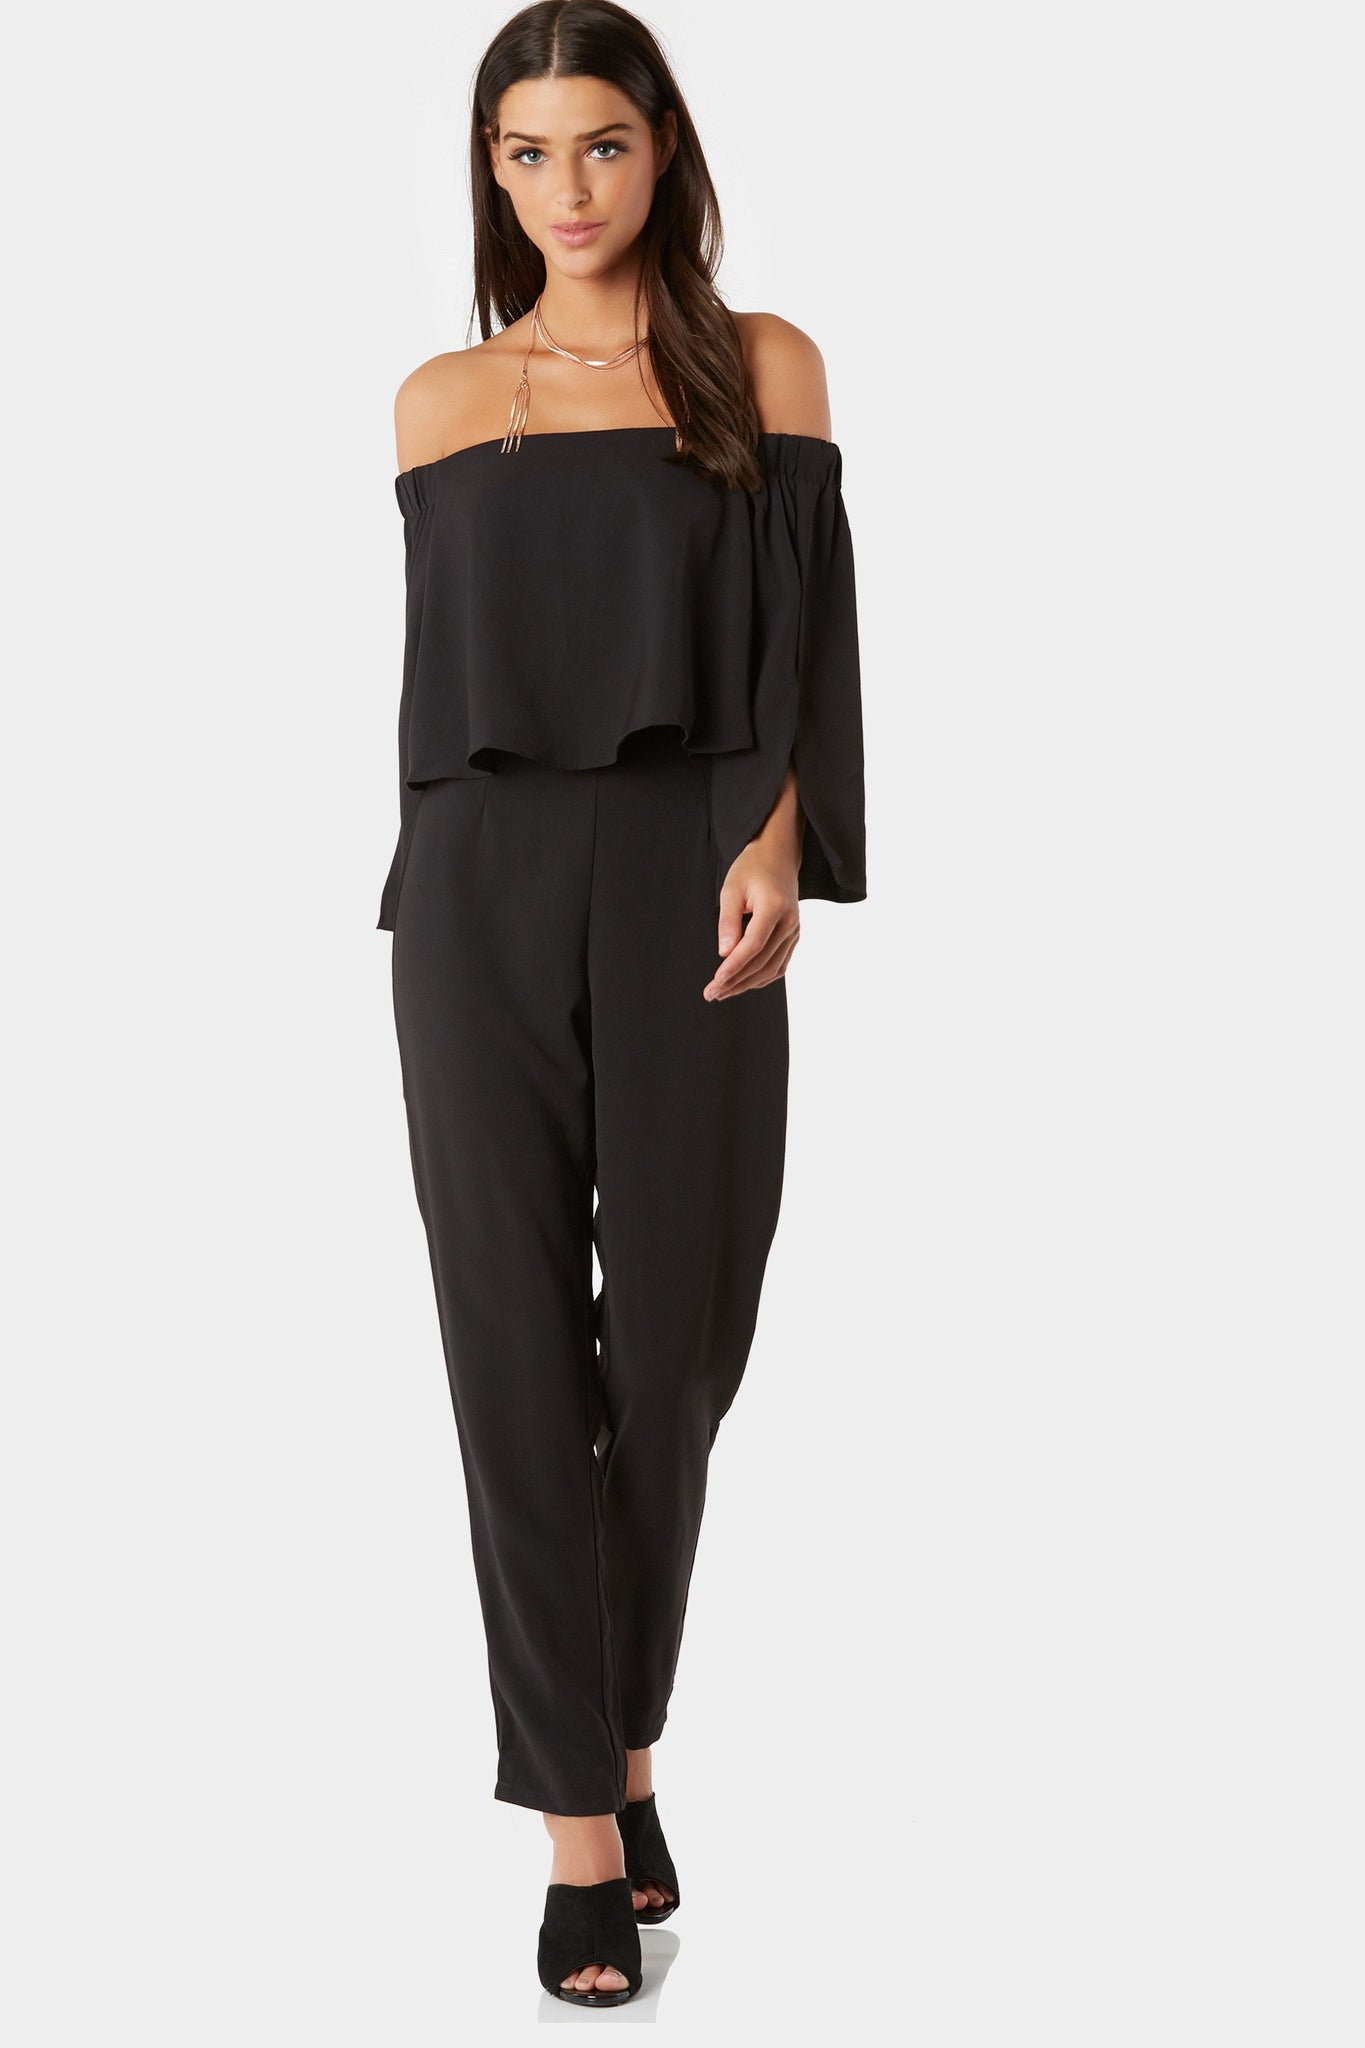 Chic off shoulder jumpsuit with tiered design. Cropped sleeves with slit detailing and back zip closure.